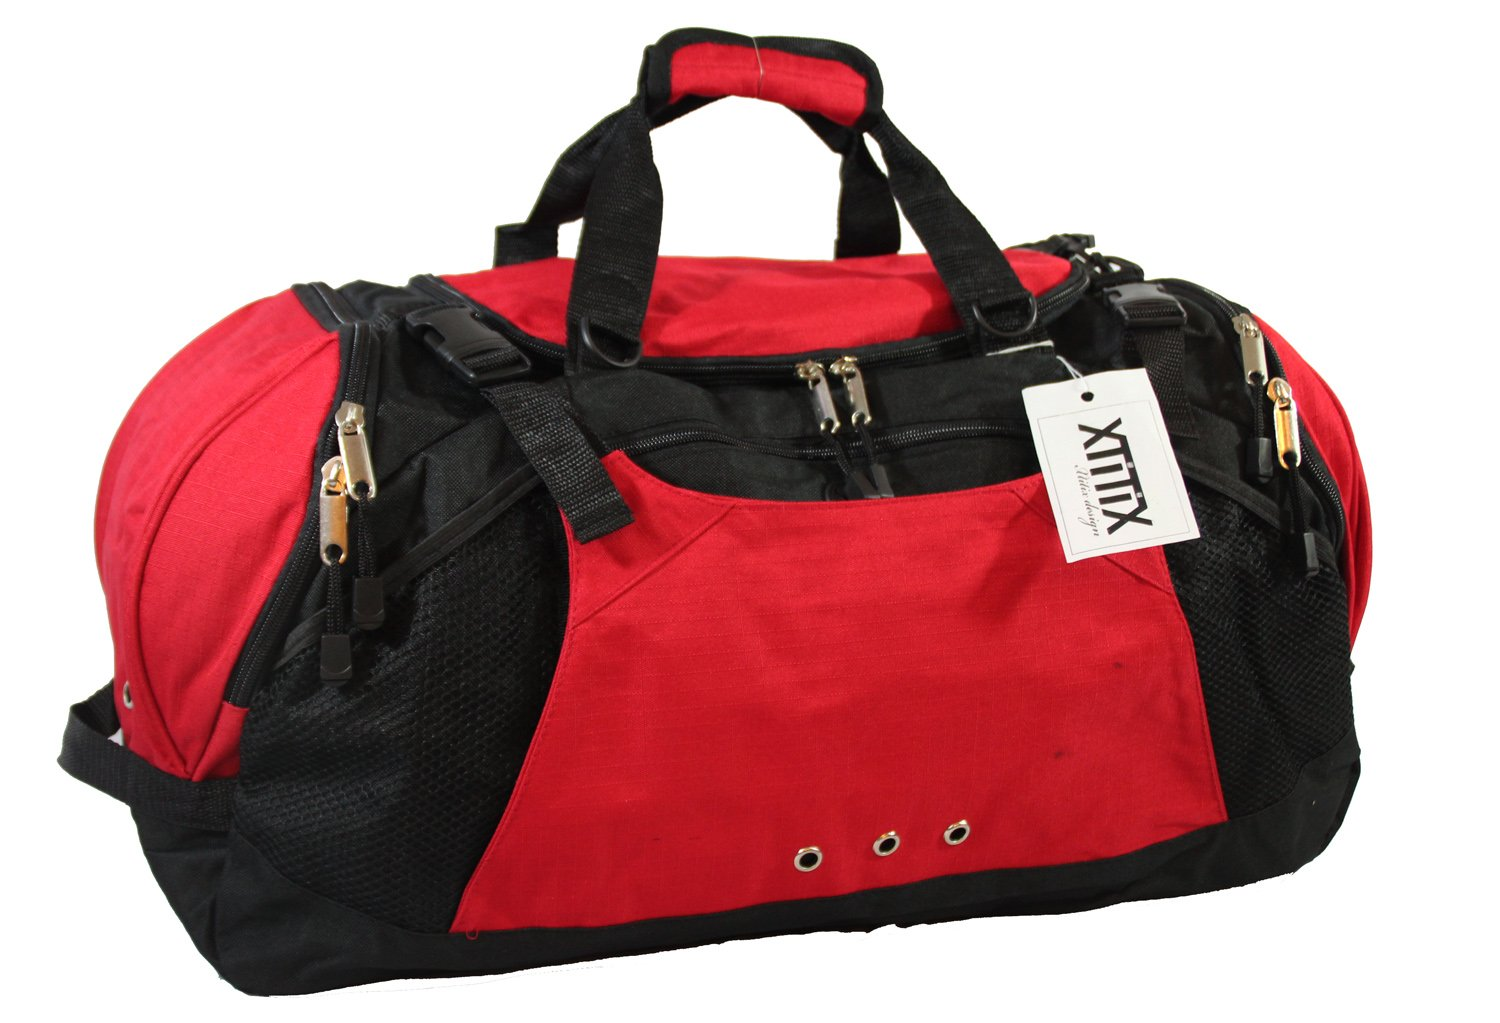 Xtitix Sport Gym Travel Deluxe Rip Stop Stylus Duffel Bag, 25'' L, Red by Xtitix (Image #2)